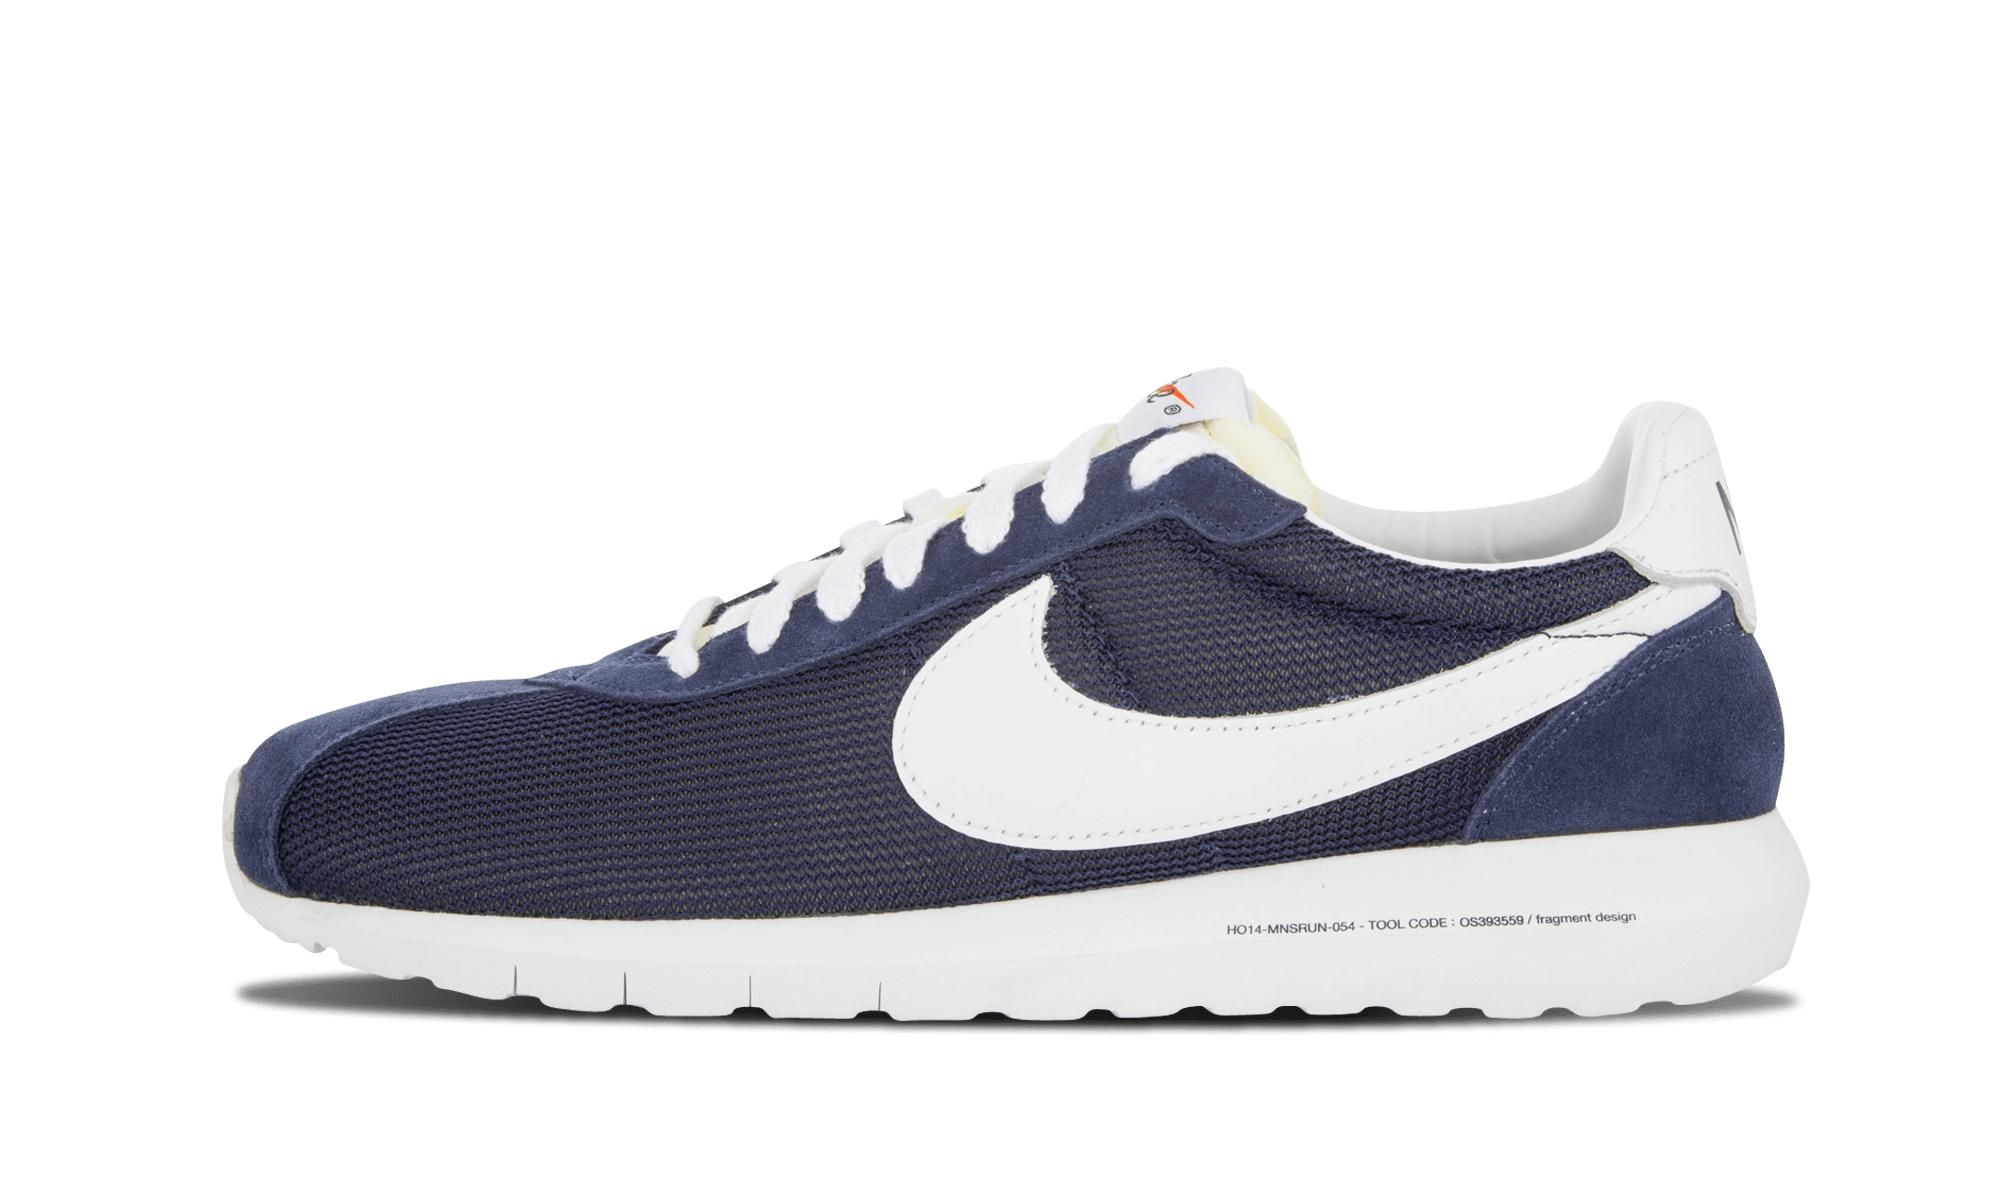 66f8ba4841488 ... coupon code for lyst nike roshe i.d 100 sp fragment in blue for men  save 4a9b7